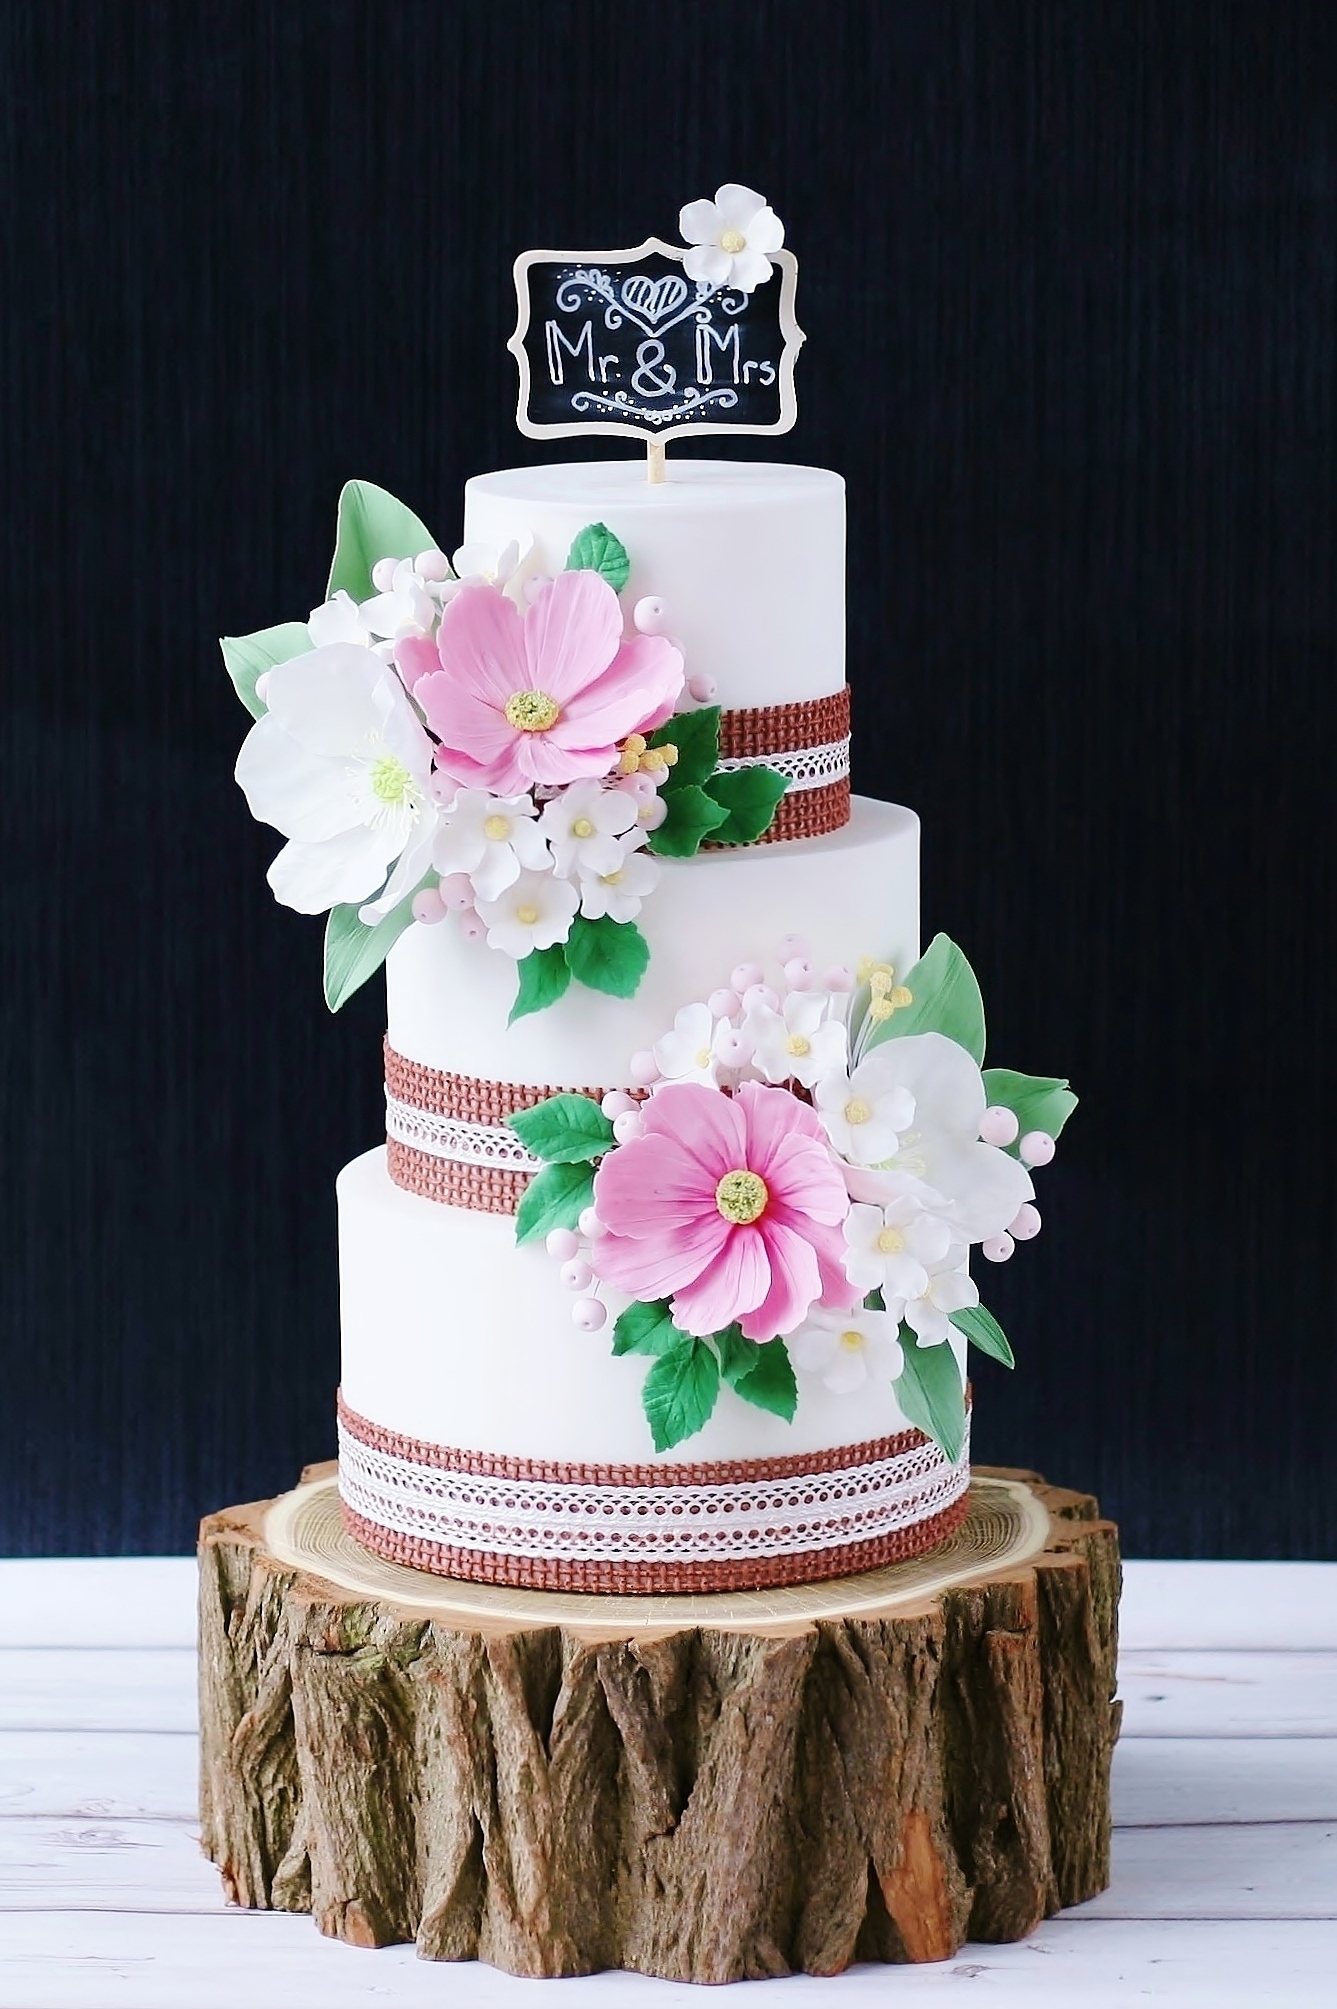 Rustic Cake Rustic cake with chalkboard, edible burlap and lace, field flowers and wood slice cake stand. Unfortunately the weather is too bad to take...